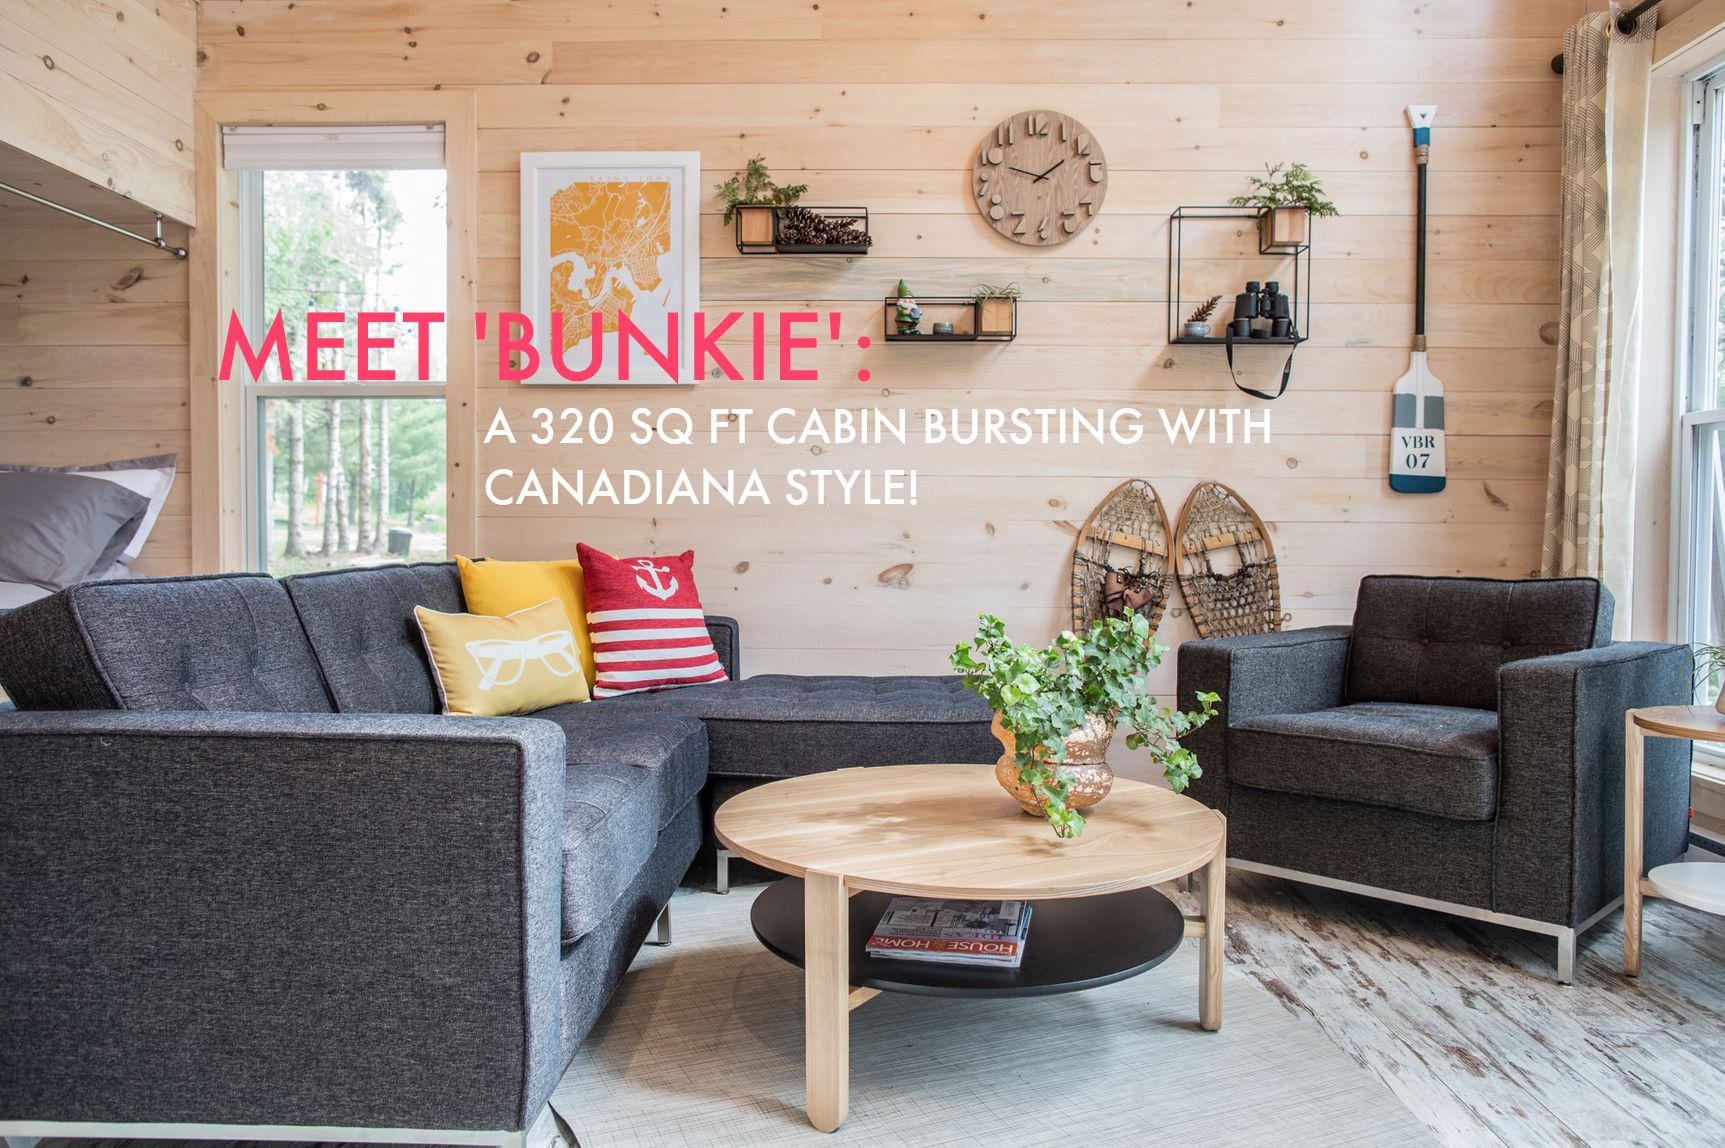 Meet Bunkie A 320 Sq Foot Cabin Bursting With Canadiana